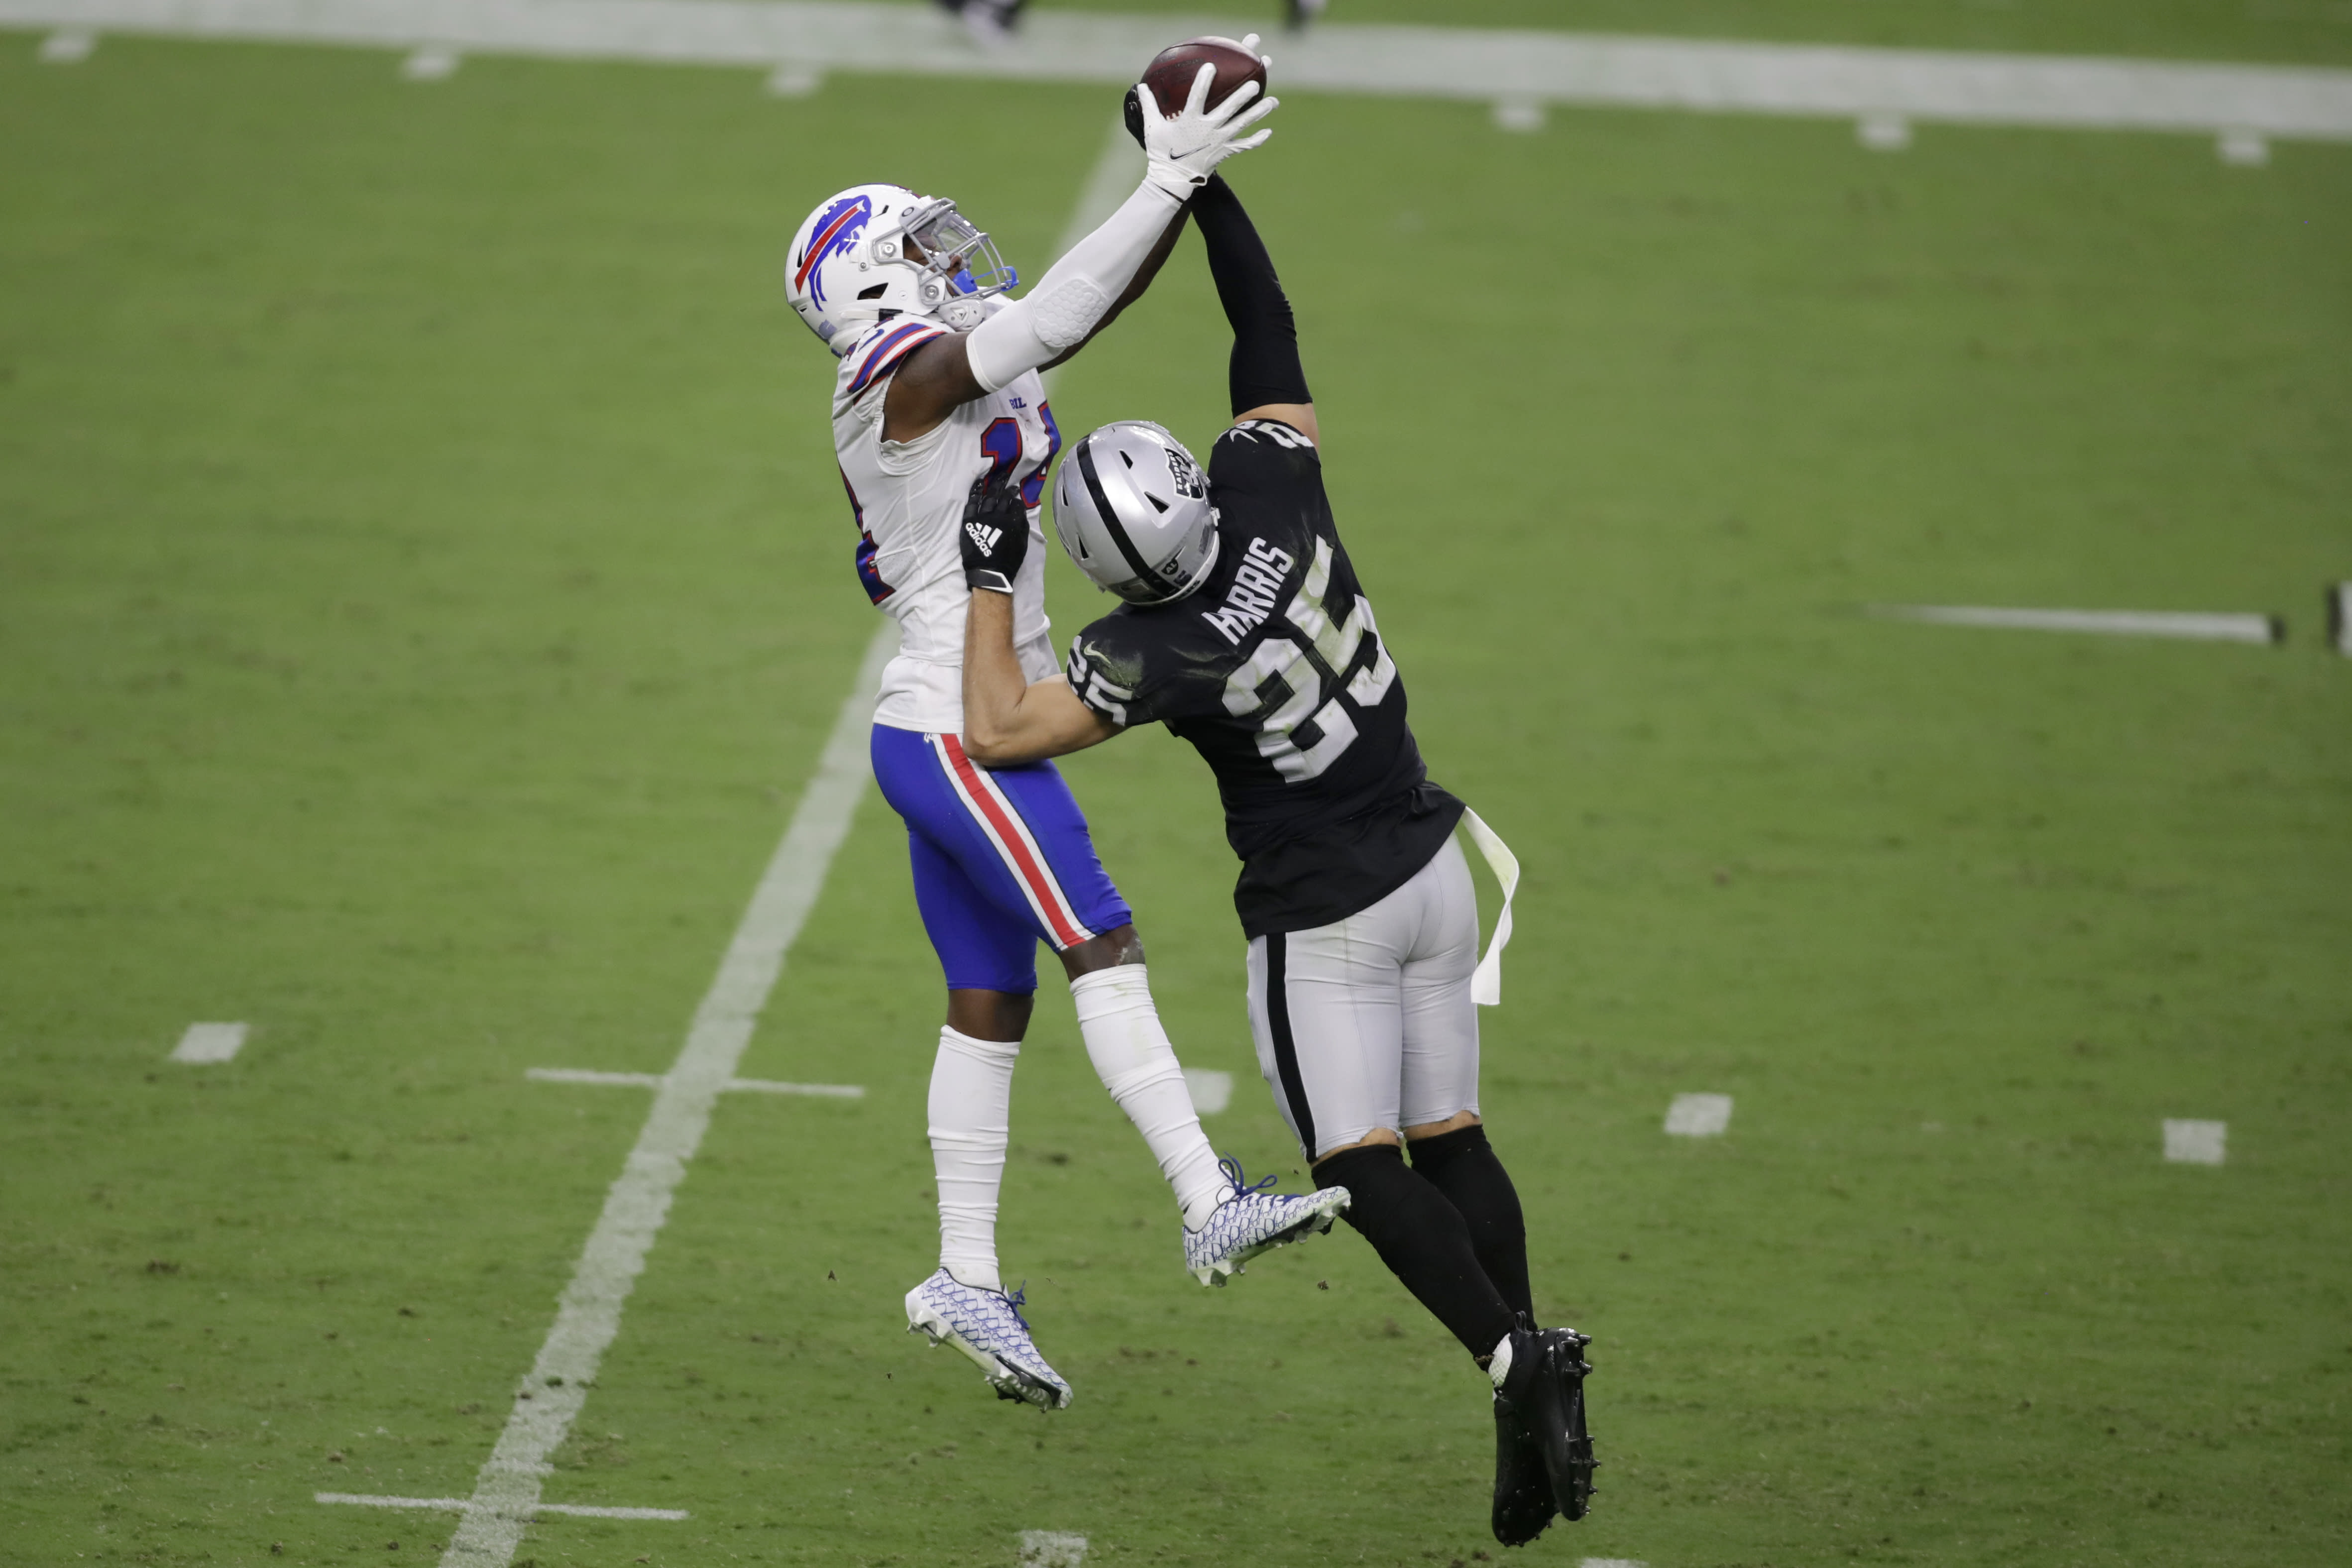 Buffalo Bills wide receiver Stefon Diggs (14) catches a pass over Las Vegas Raiders free safety Erik Harris (25) during the second half of an NFL football game, Sunday, Oct. 4, 2020, in Las Vegas. (AP Photo/Isaac Brekken)